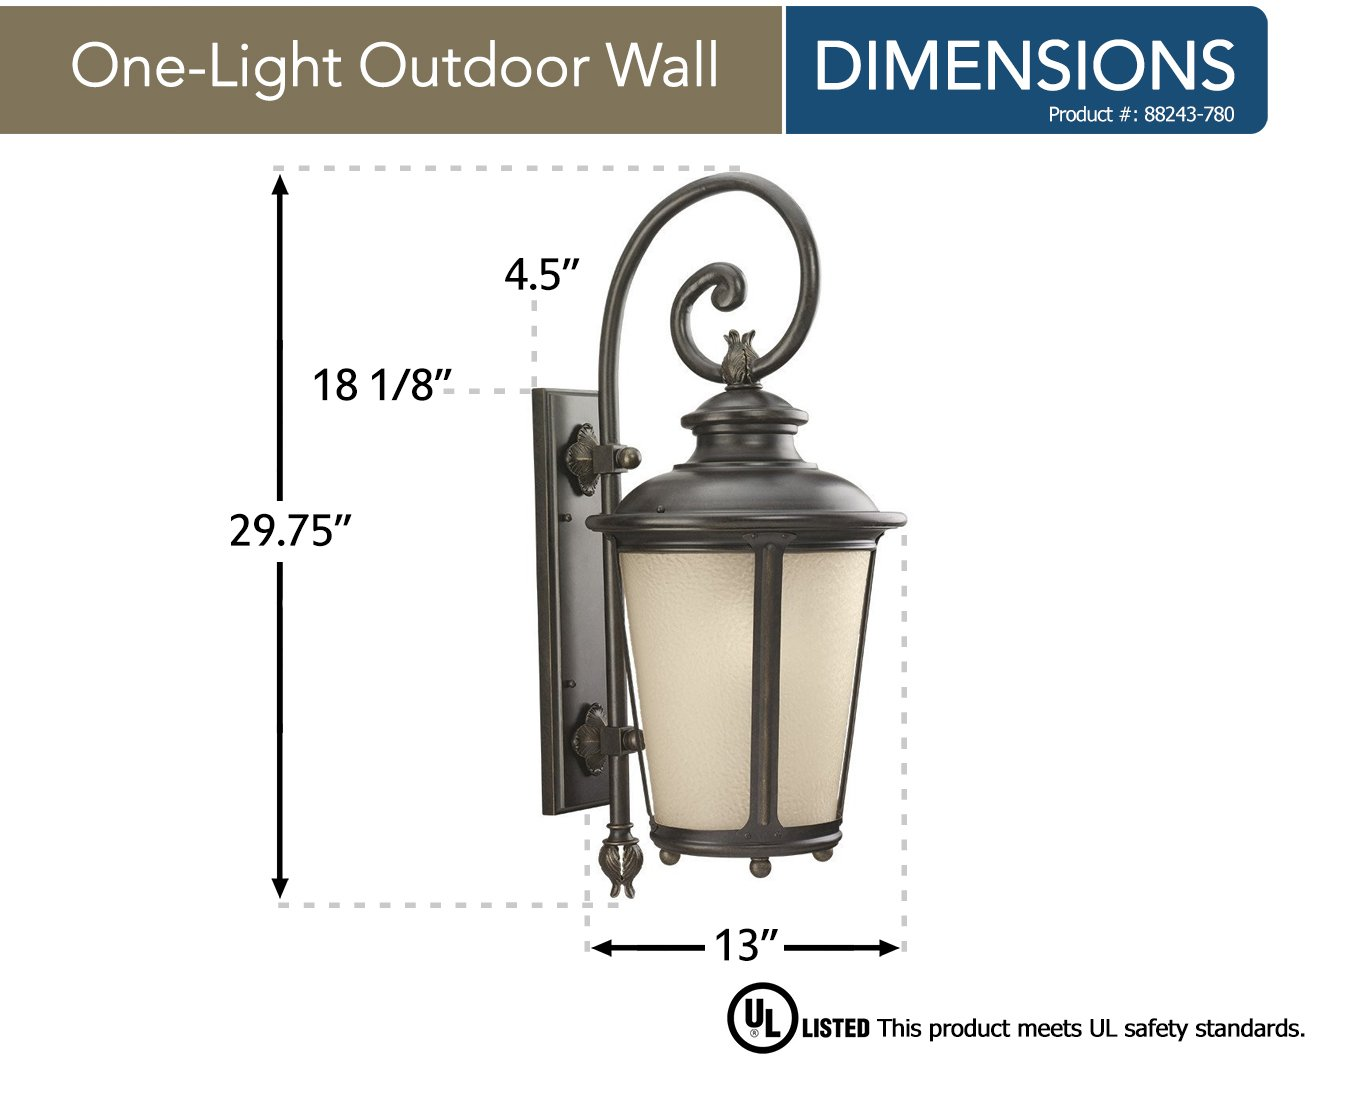 Sea Gull Lighting 88243-780 Cape May One-Light Outdoor Wall Lantern with Etched Hammered Light Amber Glass Diffuser, Burled Iron Finish by Sea Gull Lighting (Image #2)